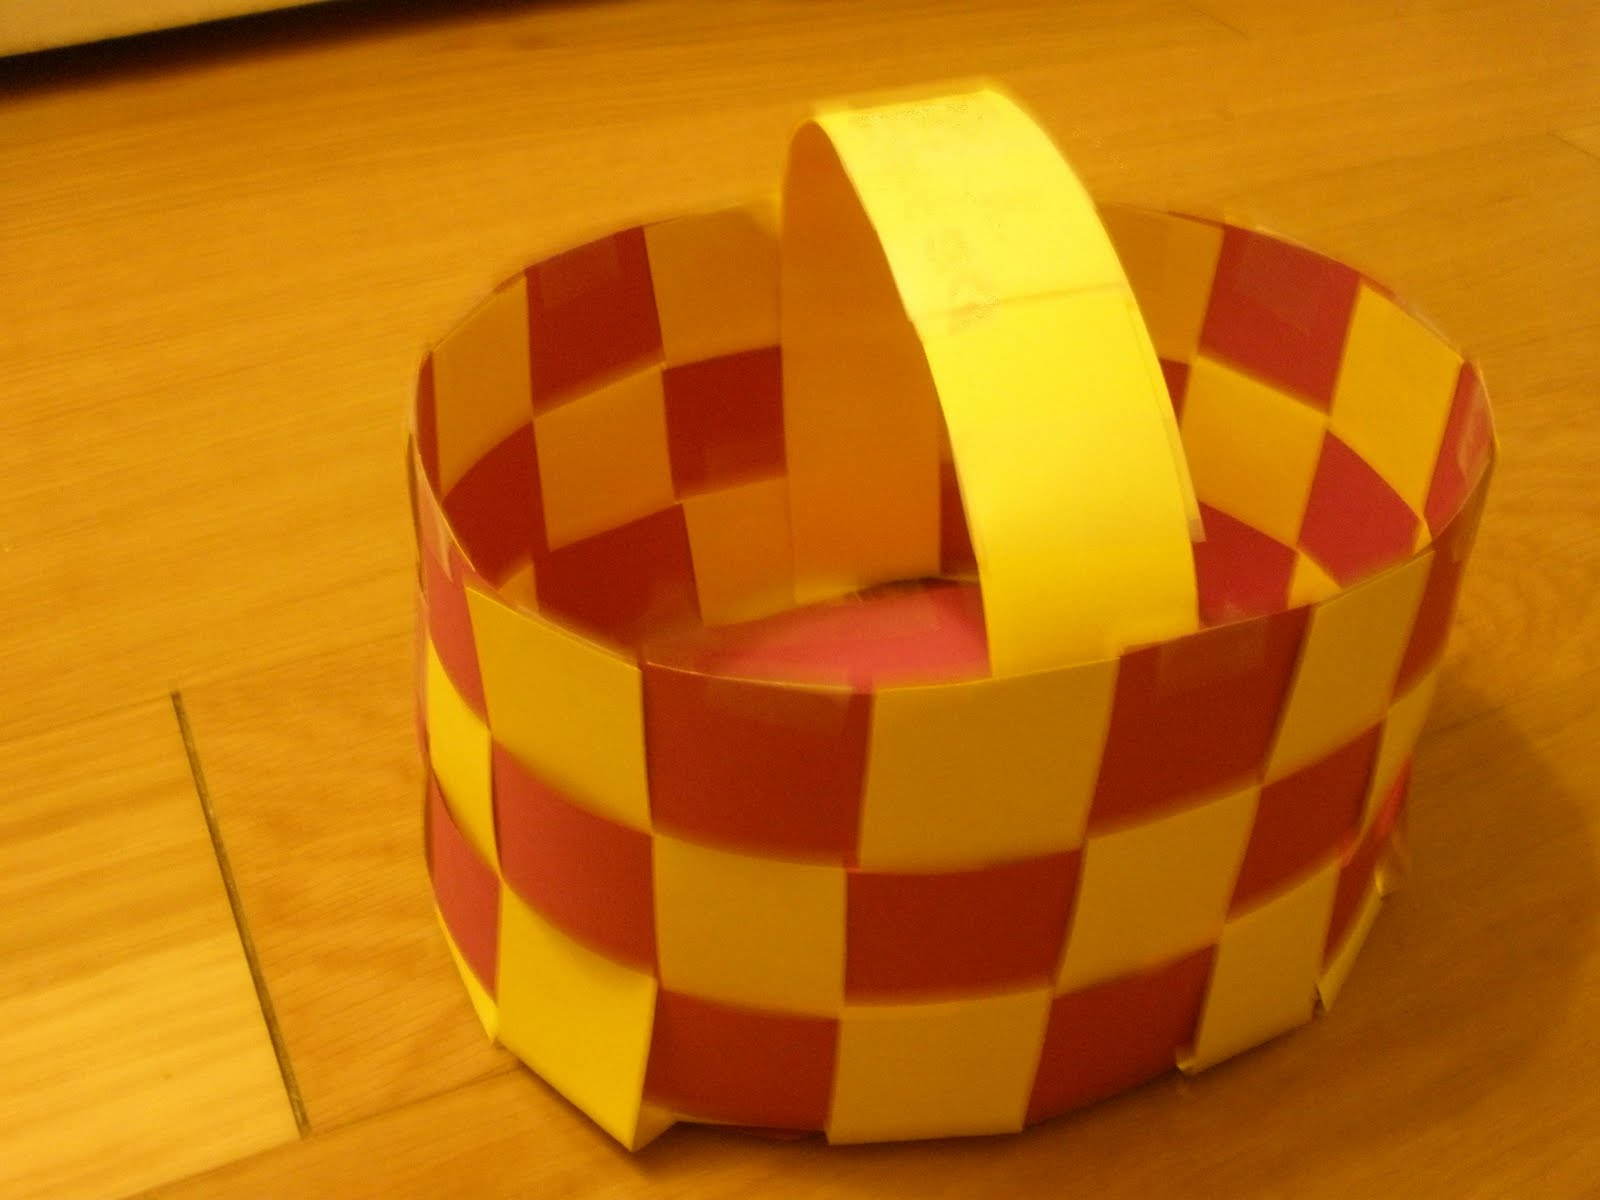 Basket Weaving Using Construction Paper : Paper basket weaving crafts